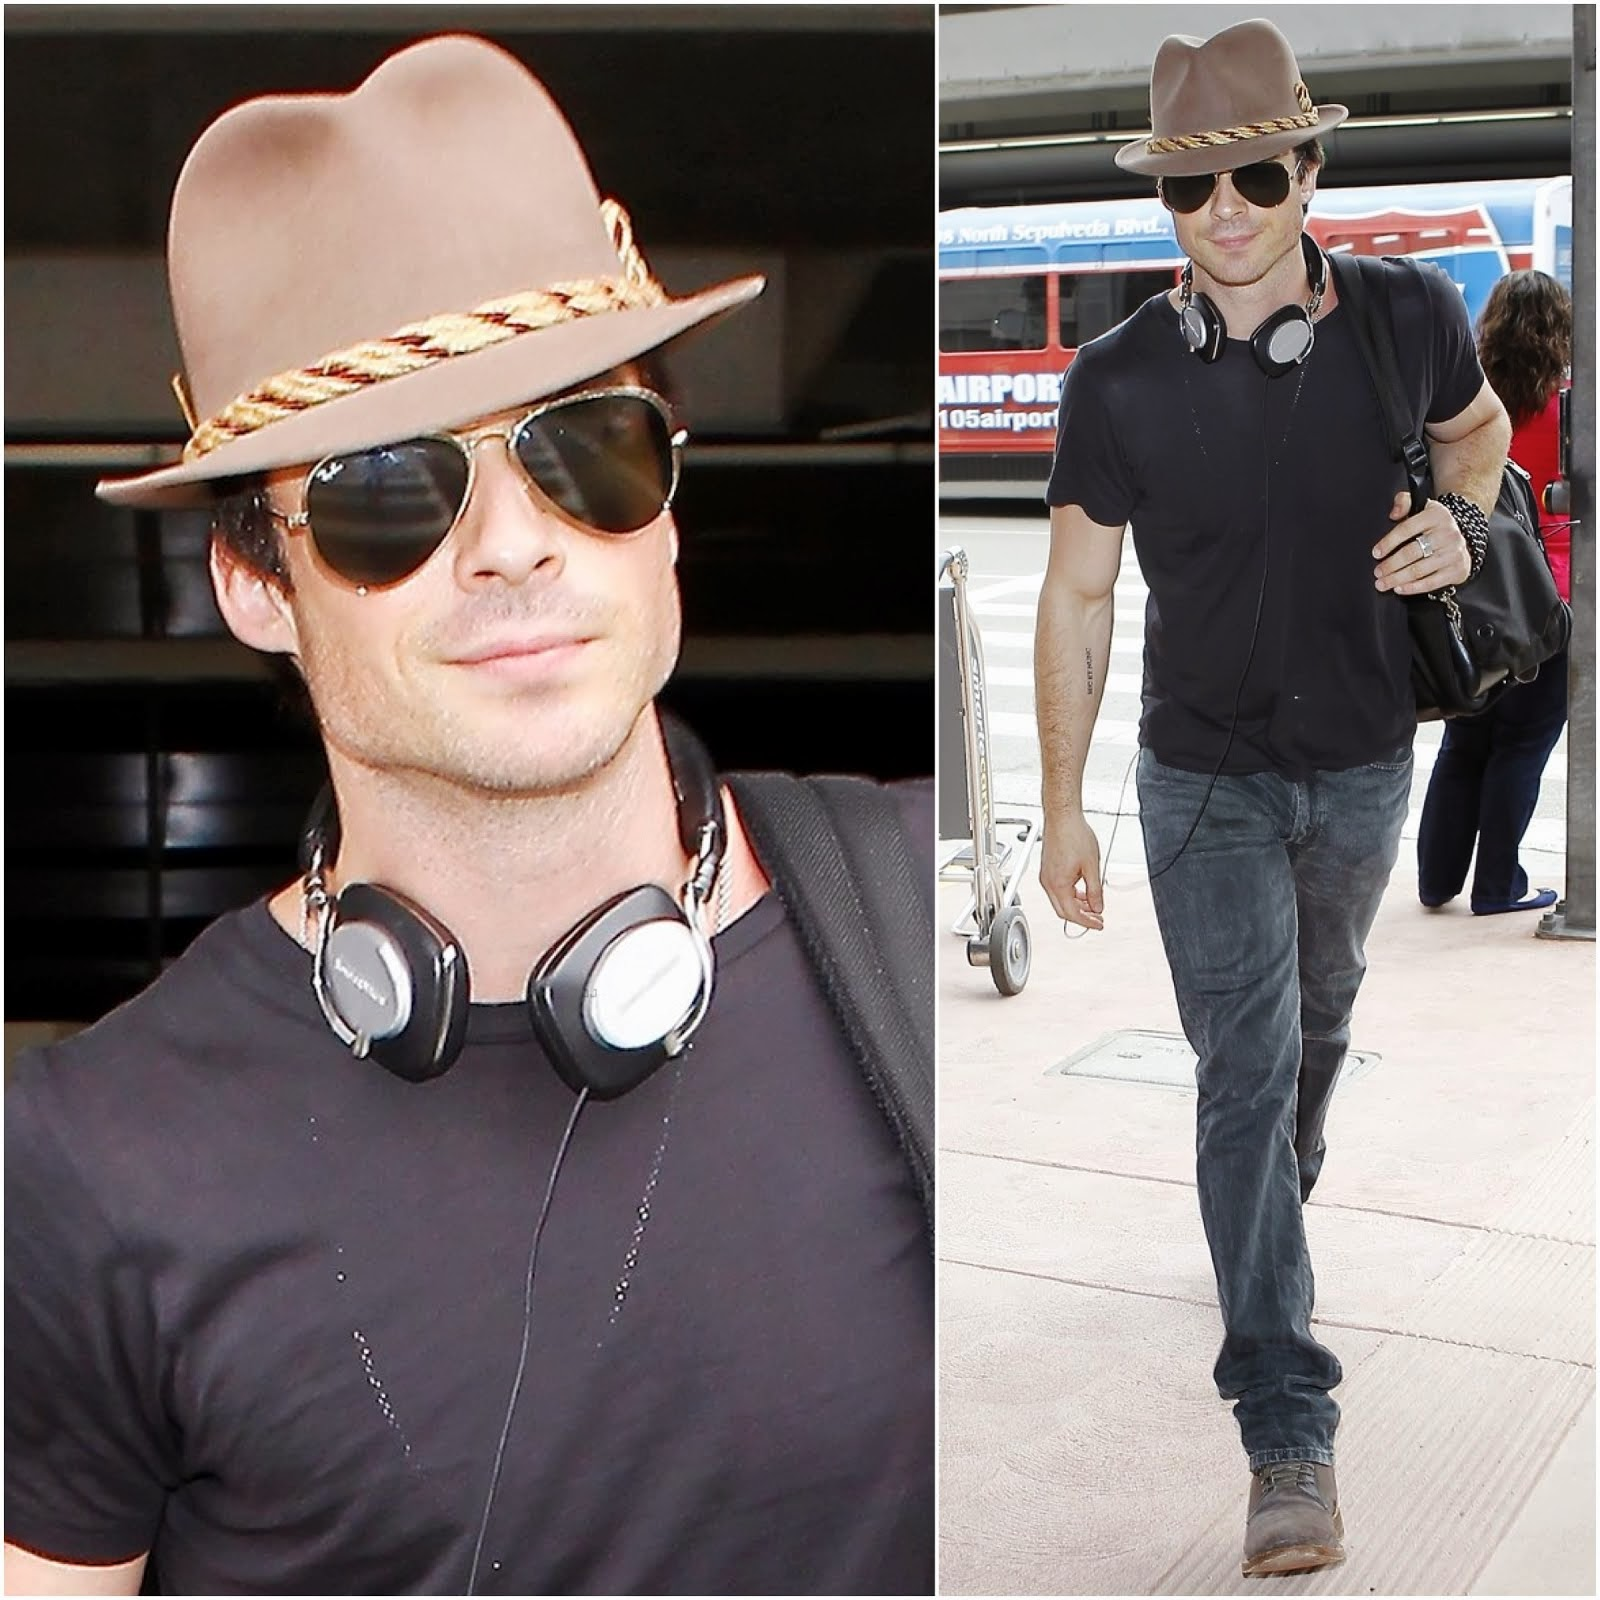 00O00 Menswear Blog: Ian Somerhalder's Bowers & Wilkins P5 headphones and Ray-Ban Aviator Sunglasses - LAX Airport July 2013